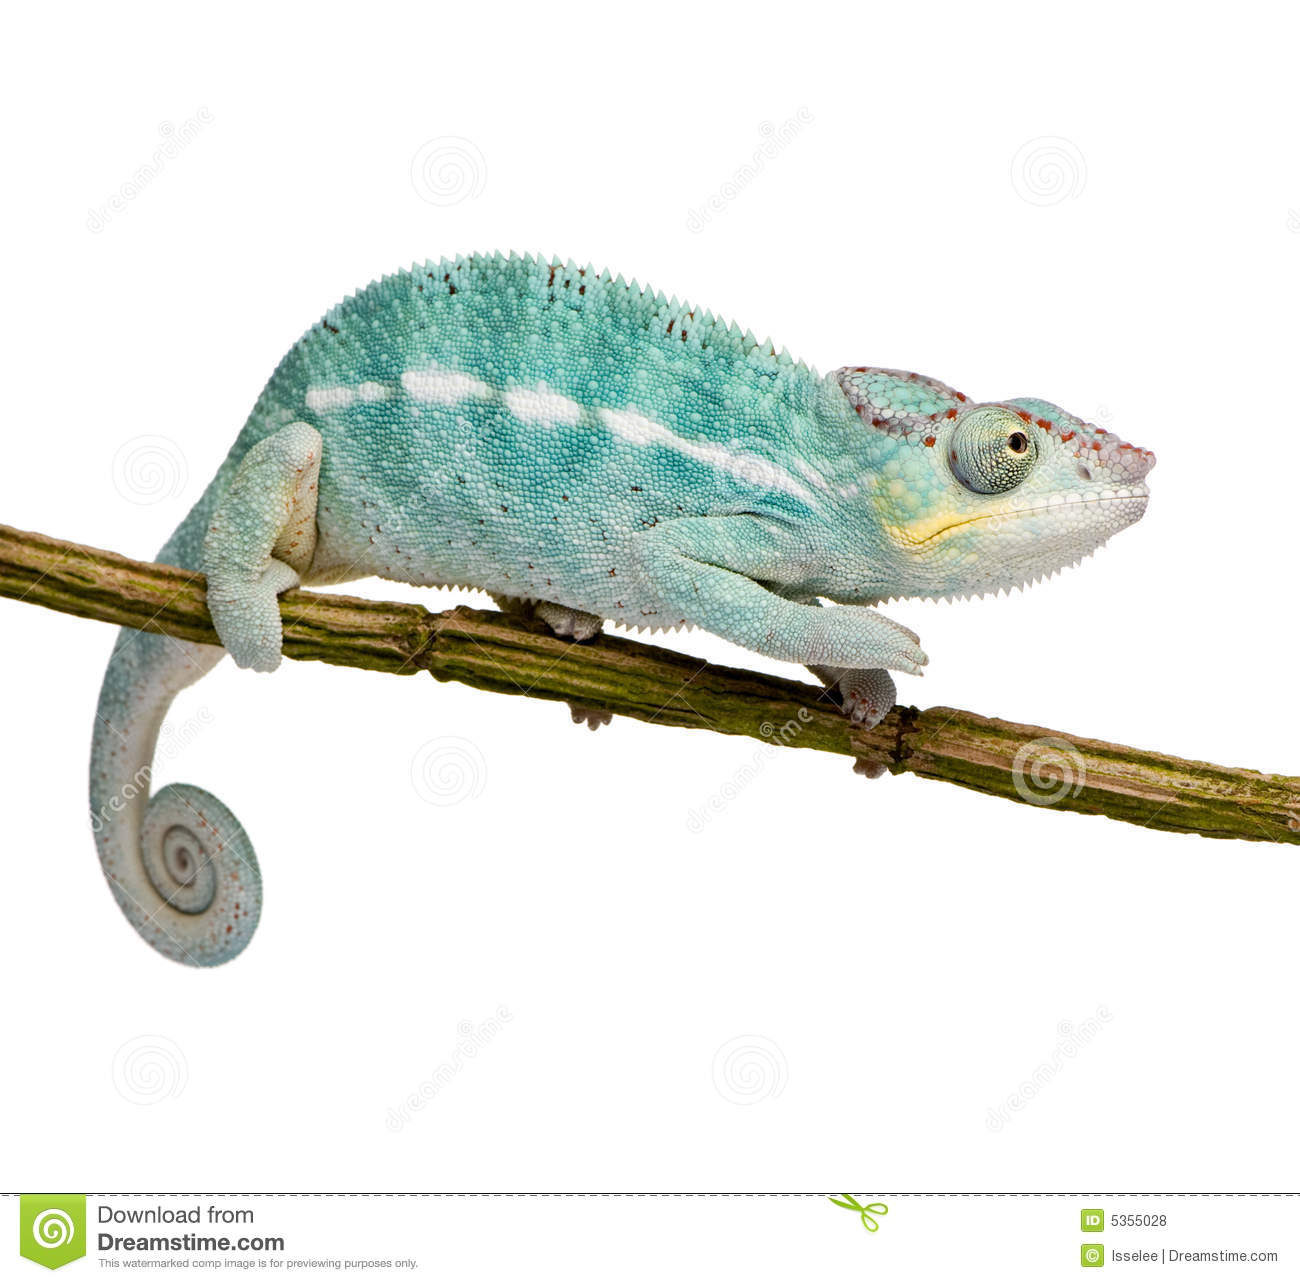 Young Chameleon Furcifer Pardalis - Nosy Be